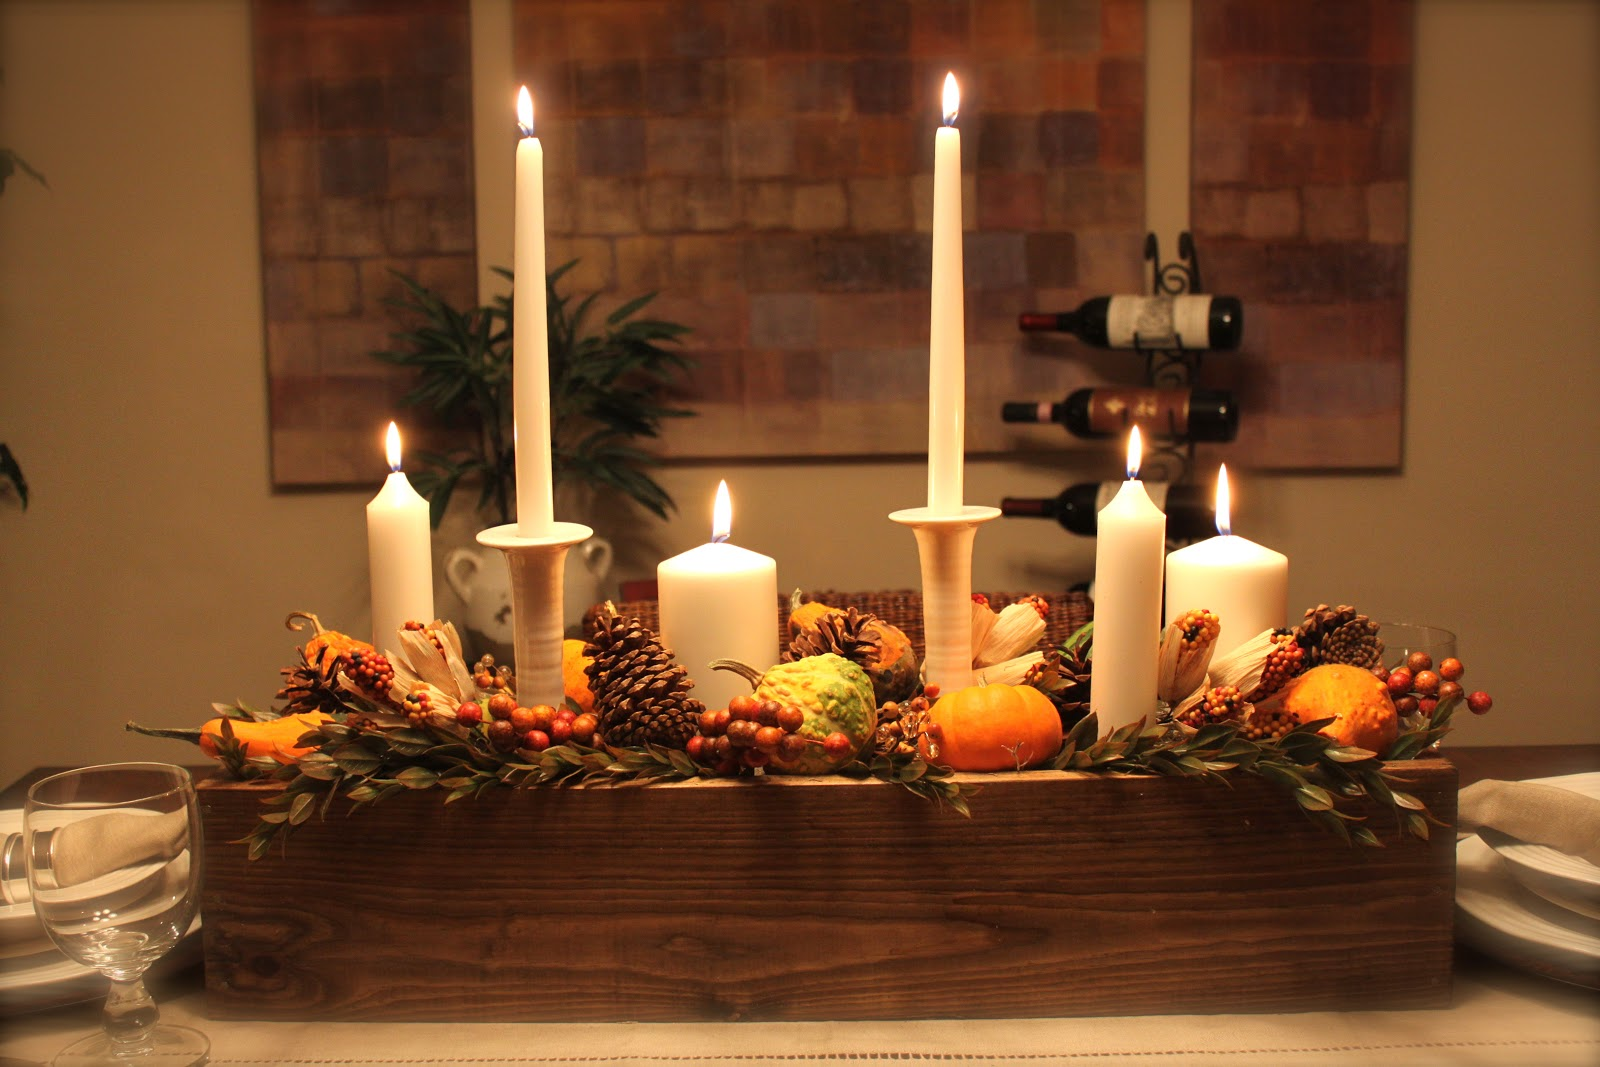 From rustic table settings and festive centerpieces to DIY fall wreaths, our easy Thanksgiving decorations will bring a welcome twist to your table or home. Warm up your home for the holiday with one of these stunning DIY projects.